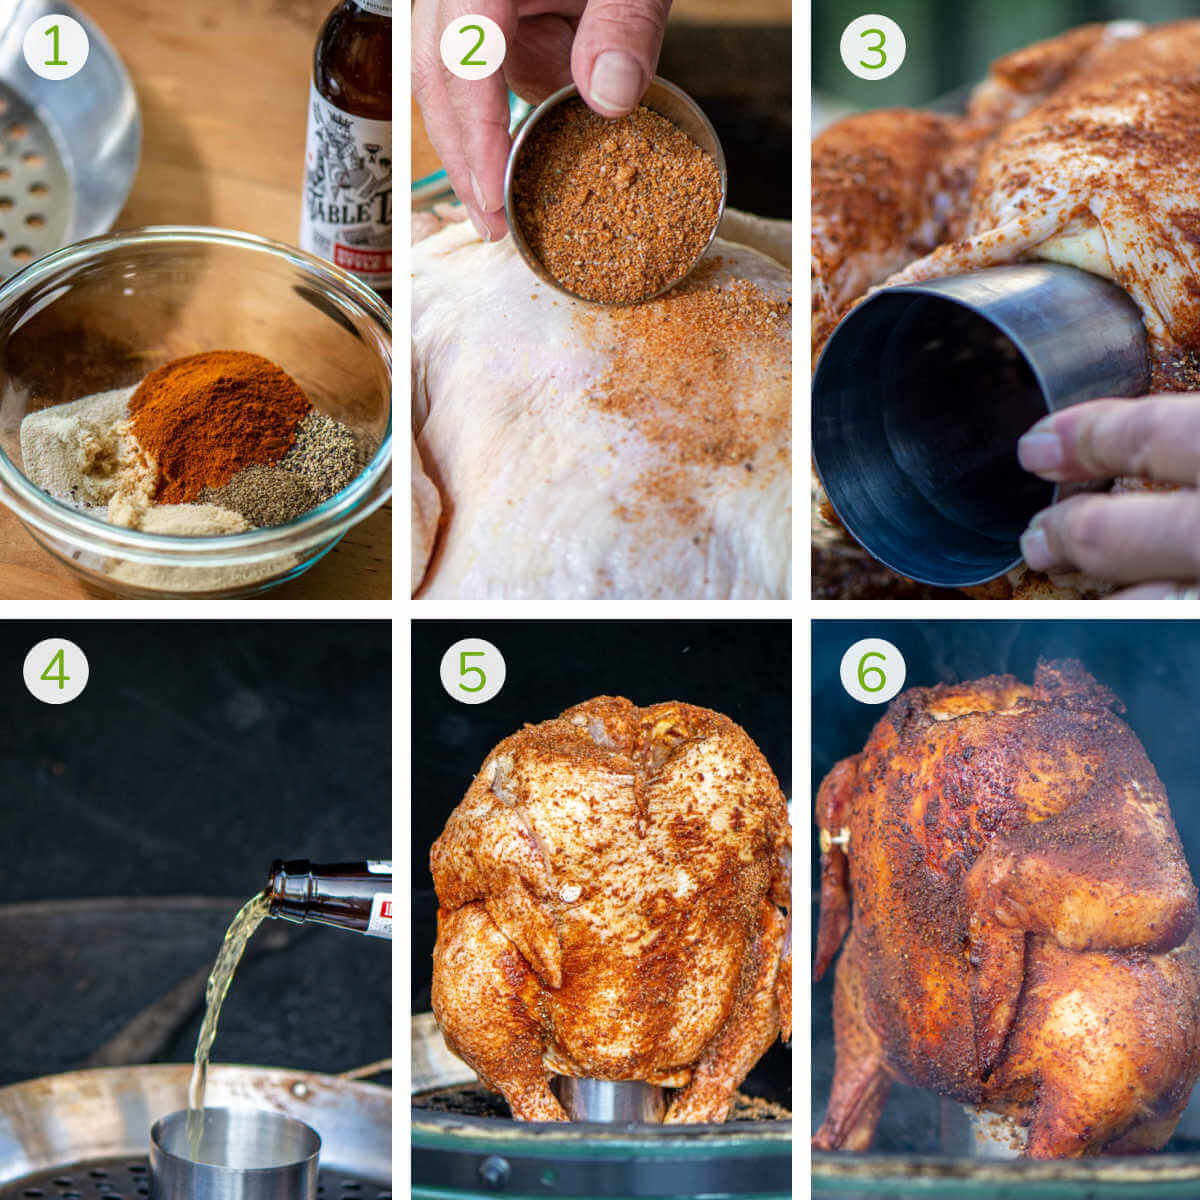 six process steps to make the dry rub, coat the chicken, insert the beer holder, pour the beer and roast the chicken on the grill.